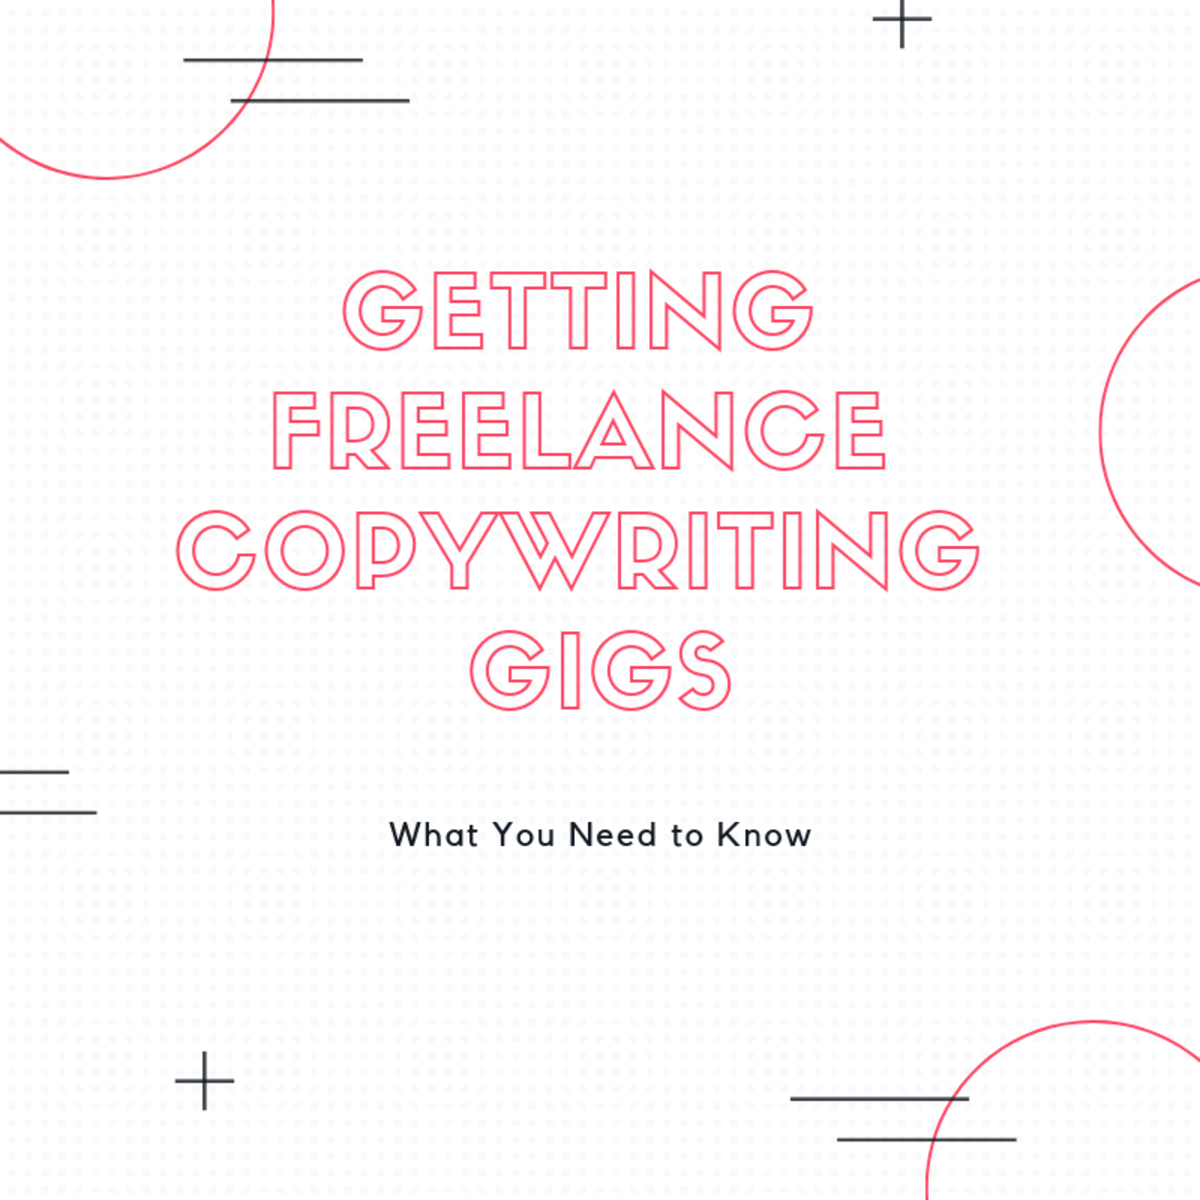 Getting Freelance Copywriting Gigs: What You Need to Know